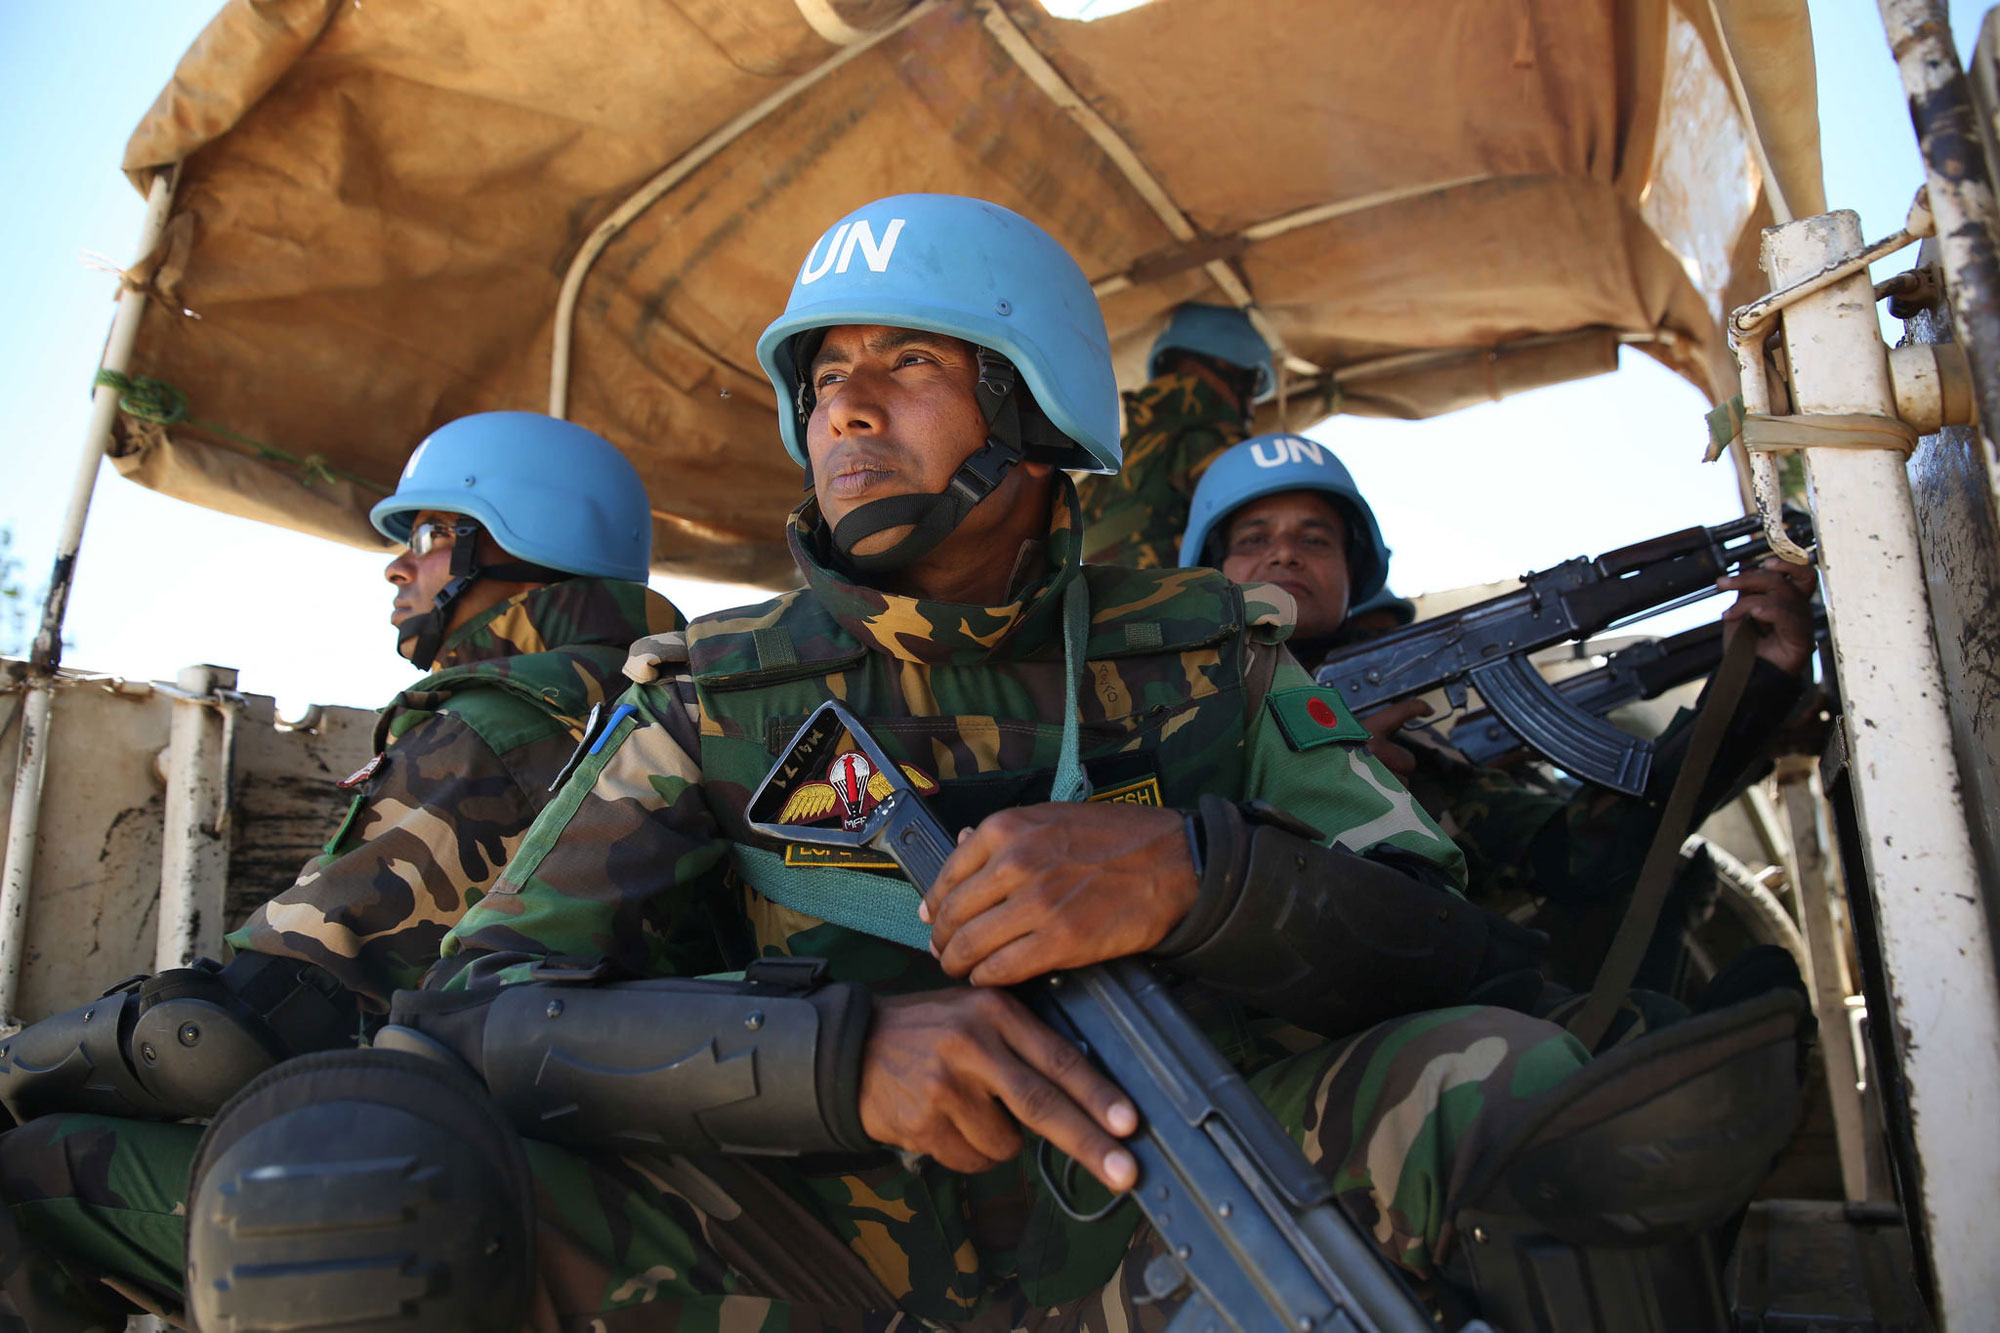 UN Peacekeepers on patrol in Bunia, Ituri Province, DR Congo